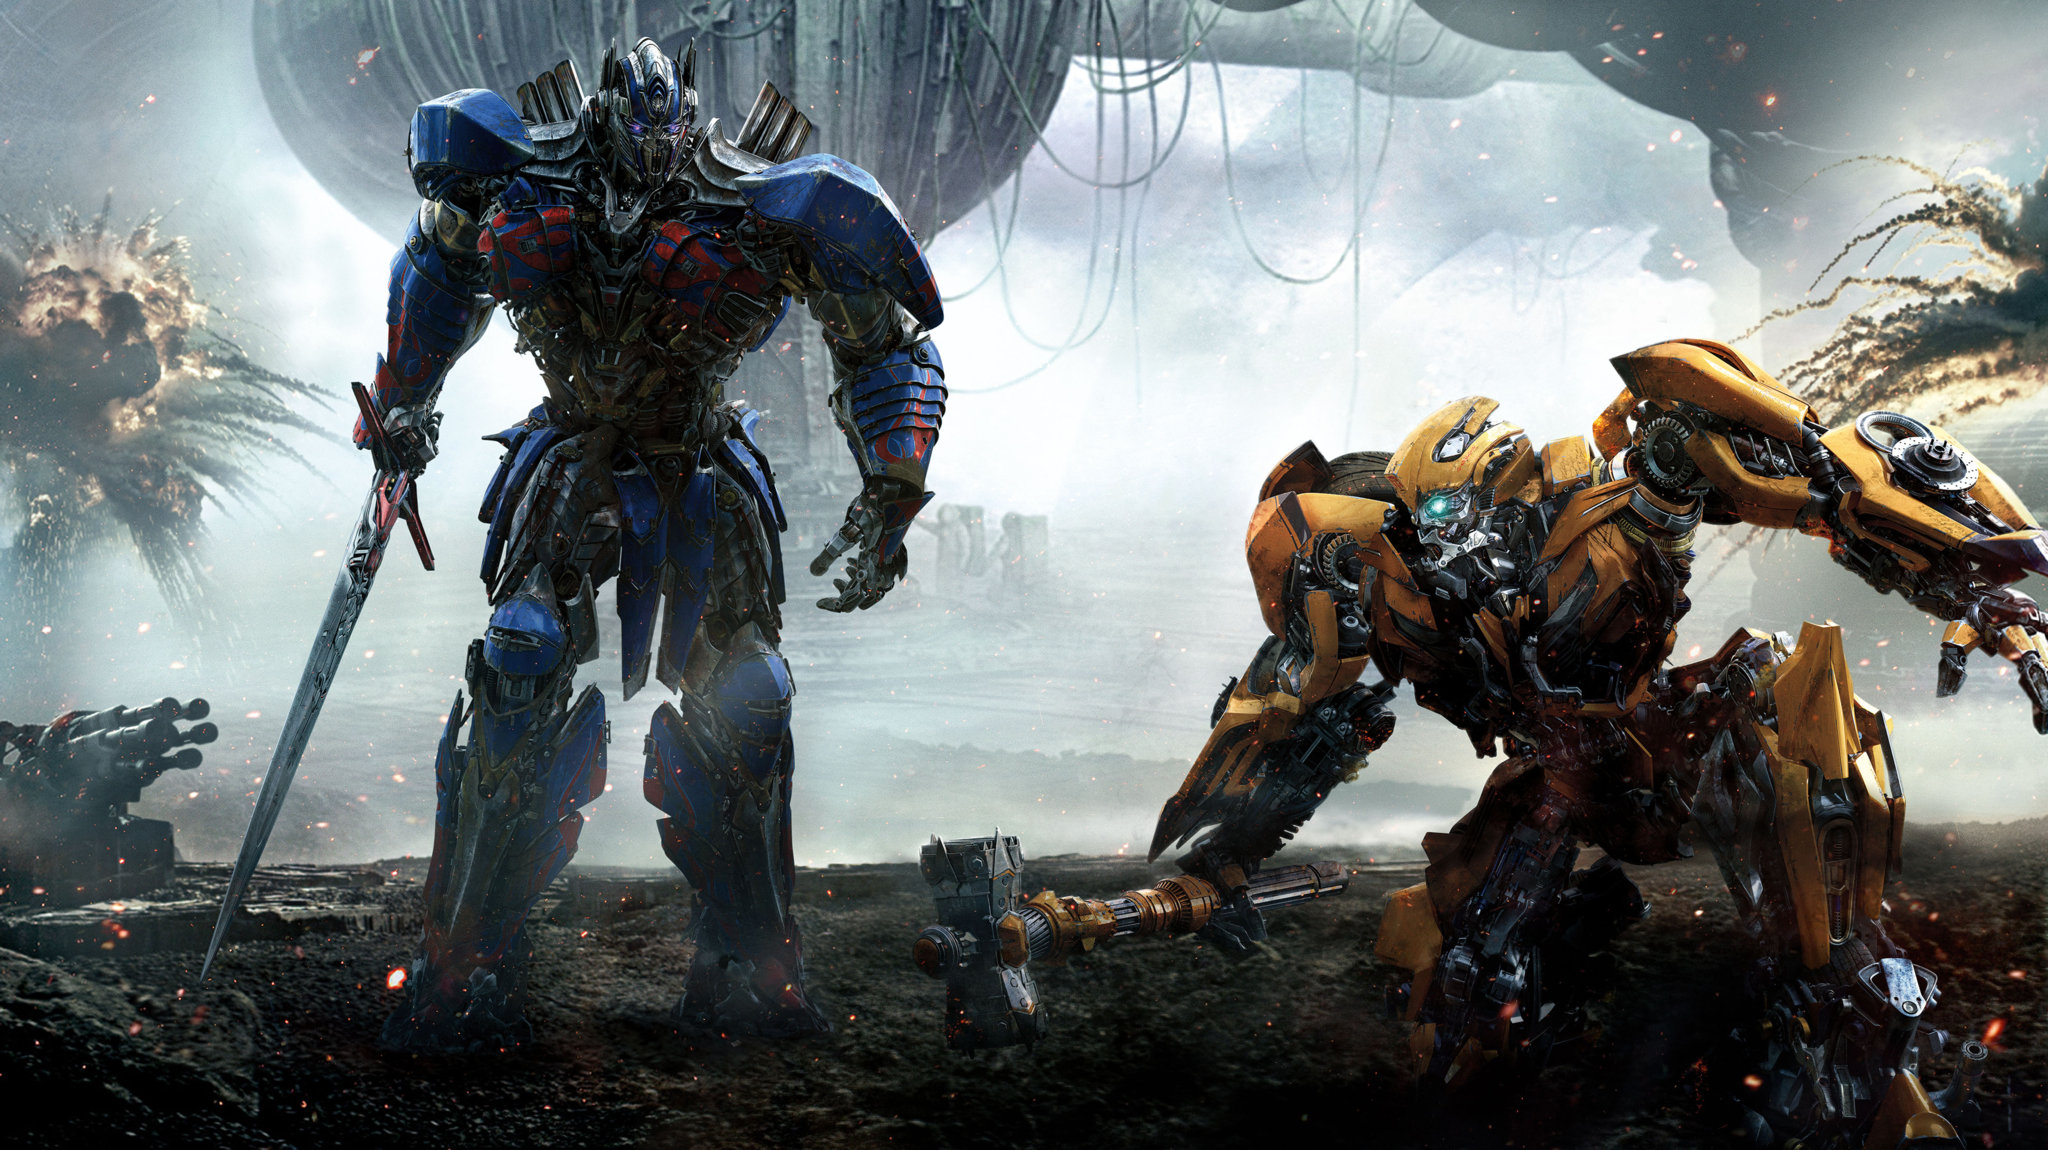 transformers-the-last-knight-5000x2808-optimus-prime-bumblebee-4k-9822 (1).jpg